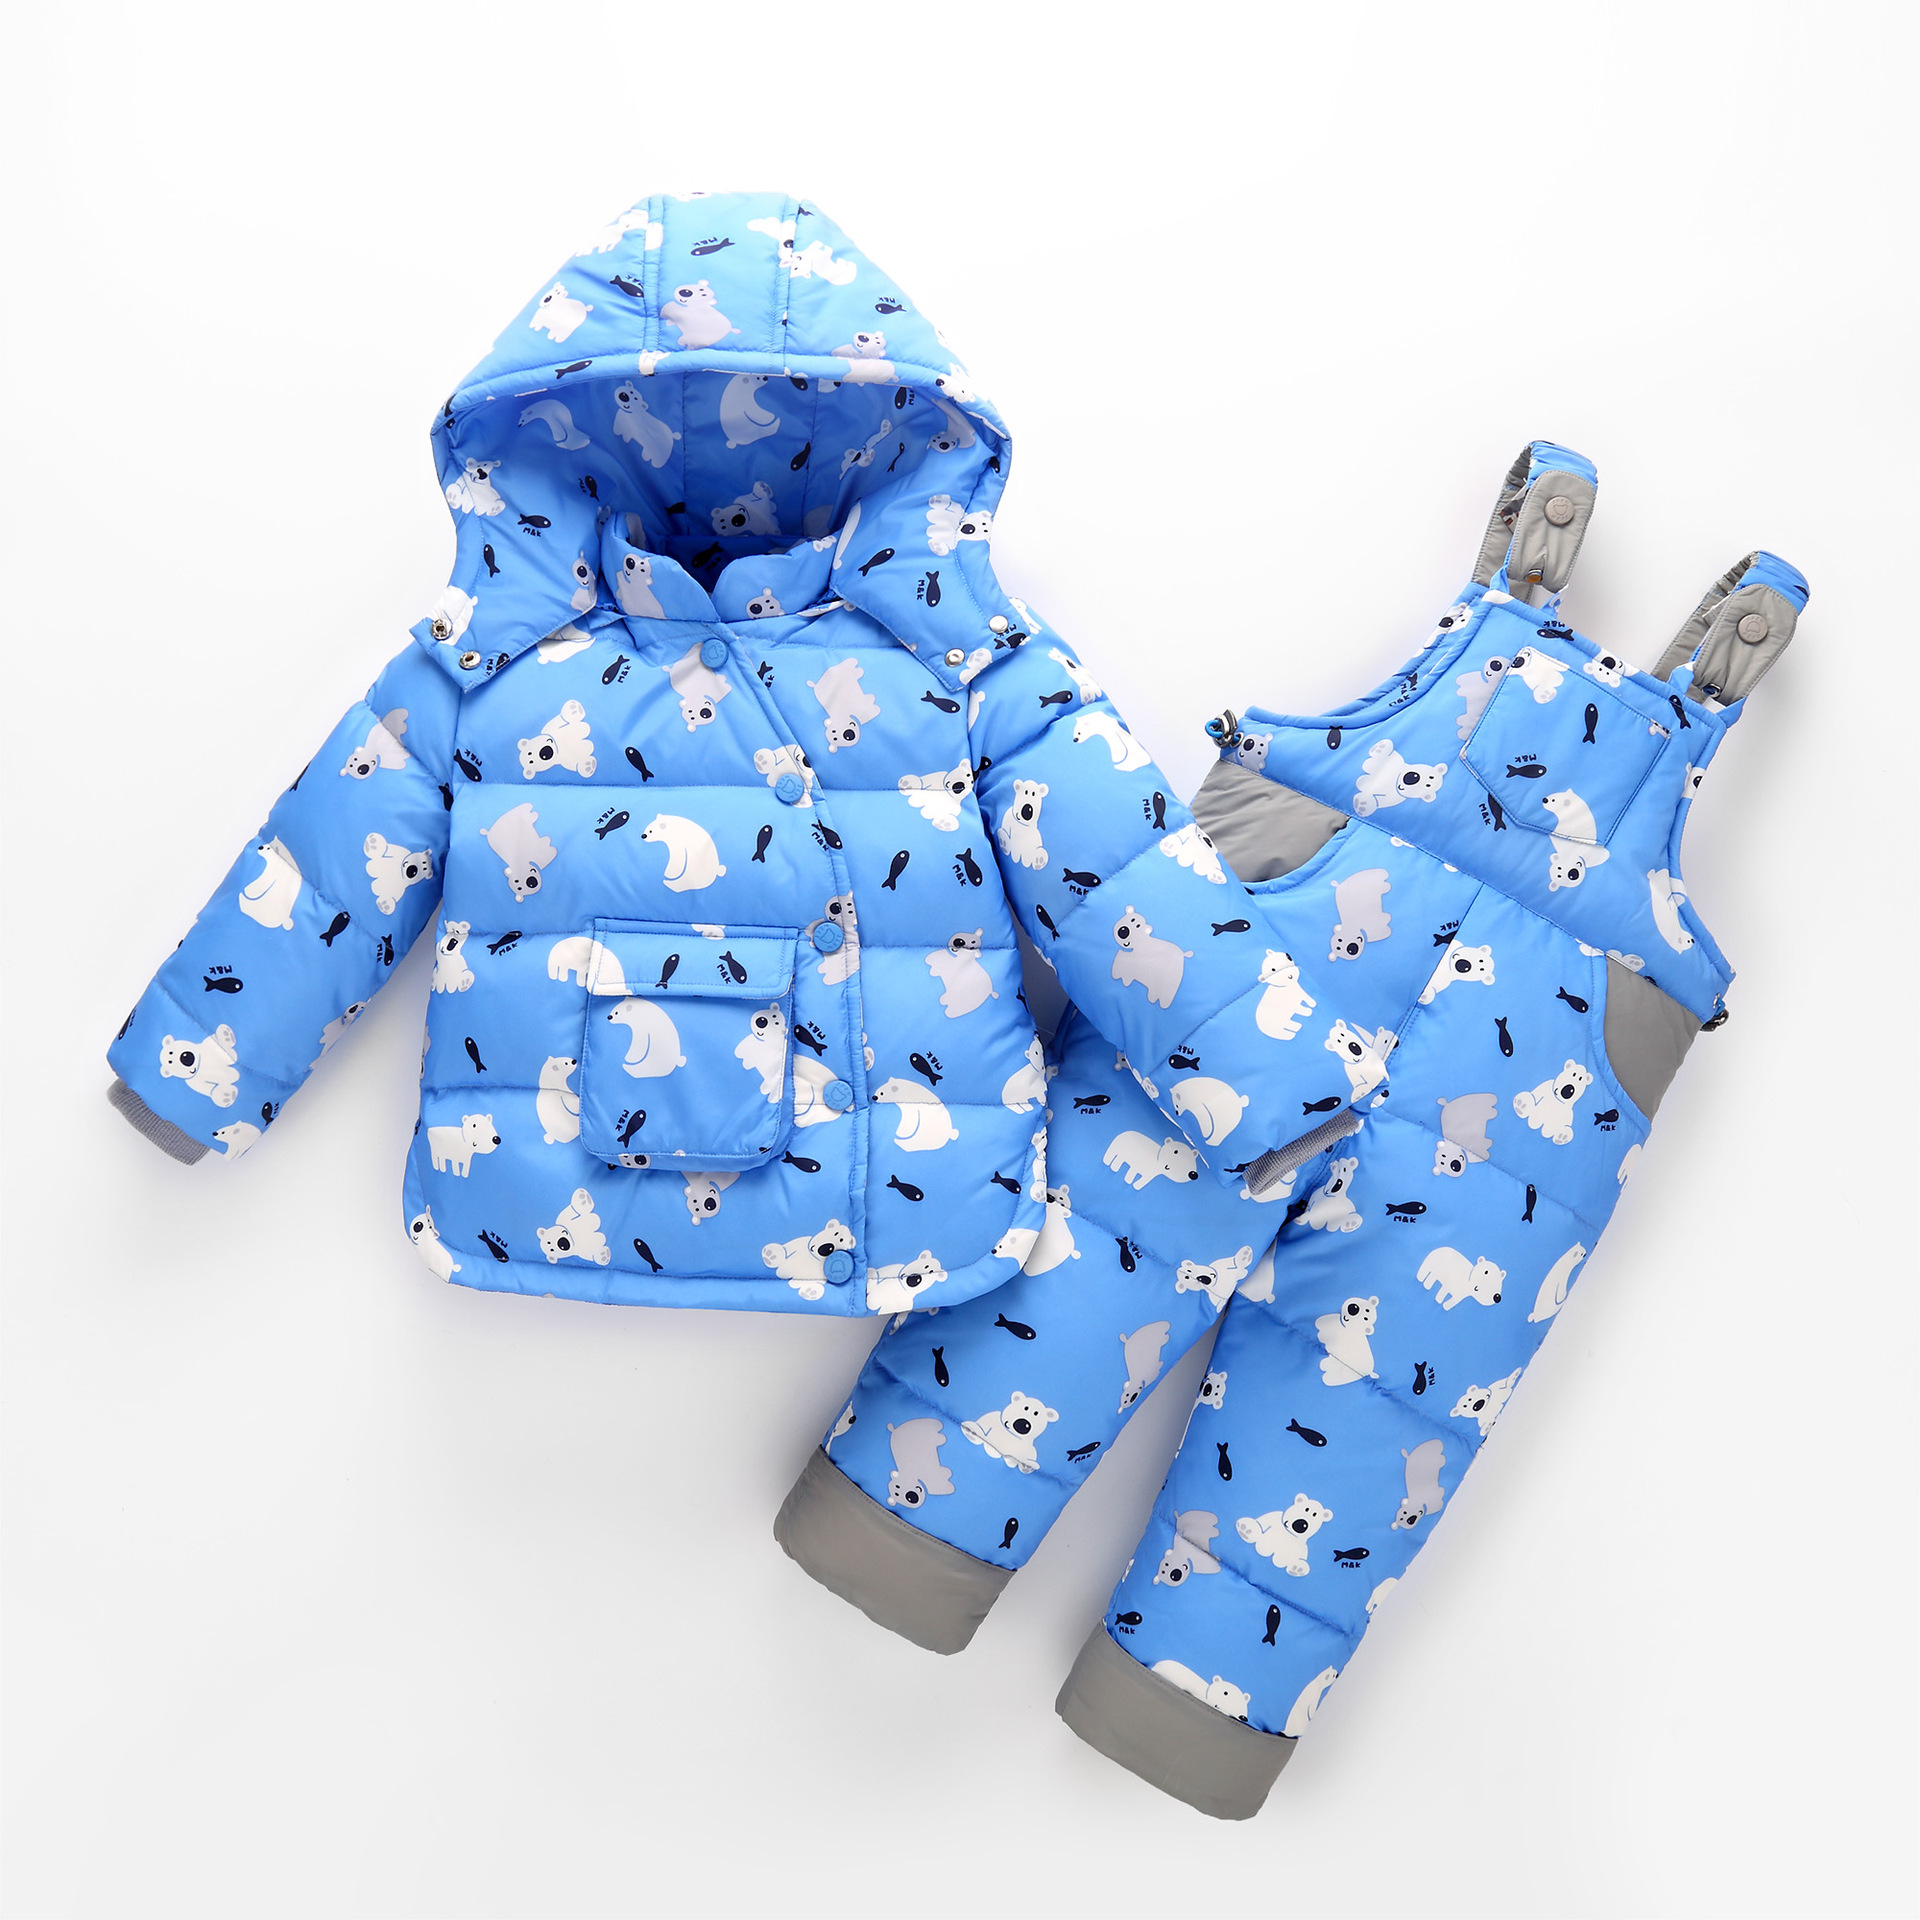 2017 New Children Down Jacket  Suspenders  Pants  Baby Strap Trouser Suit Baby boys Girls winter Clothes  kids Clothing Sets new 2016 baby down coats set baby down jacket suspenders girl